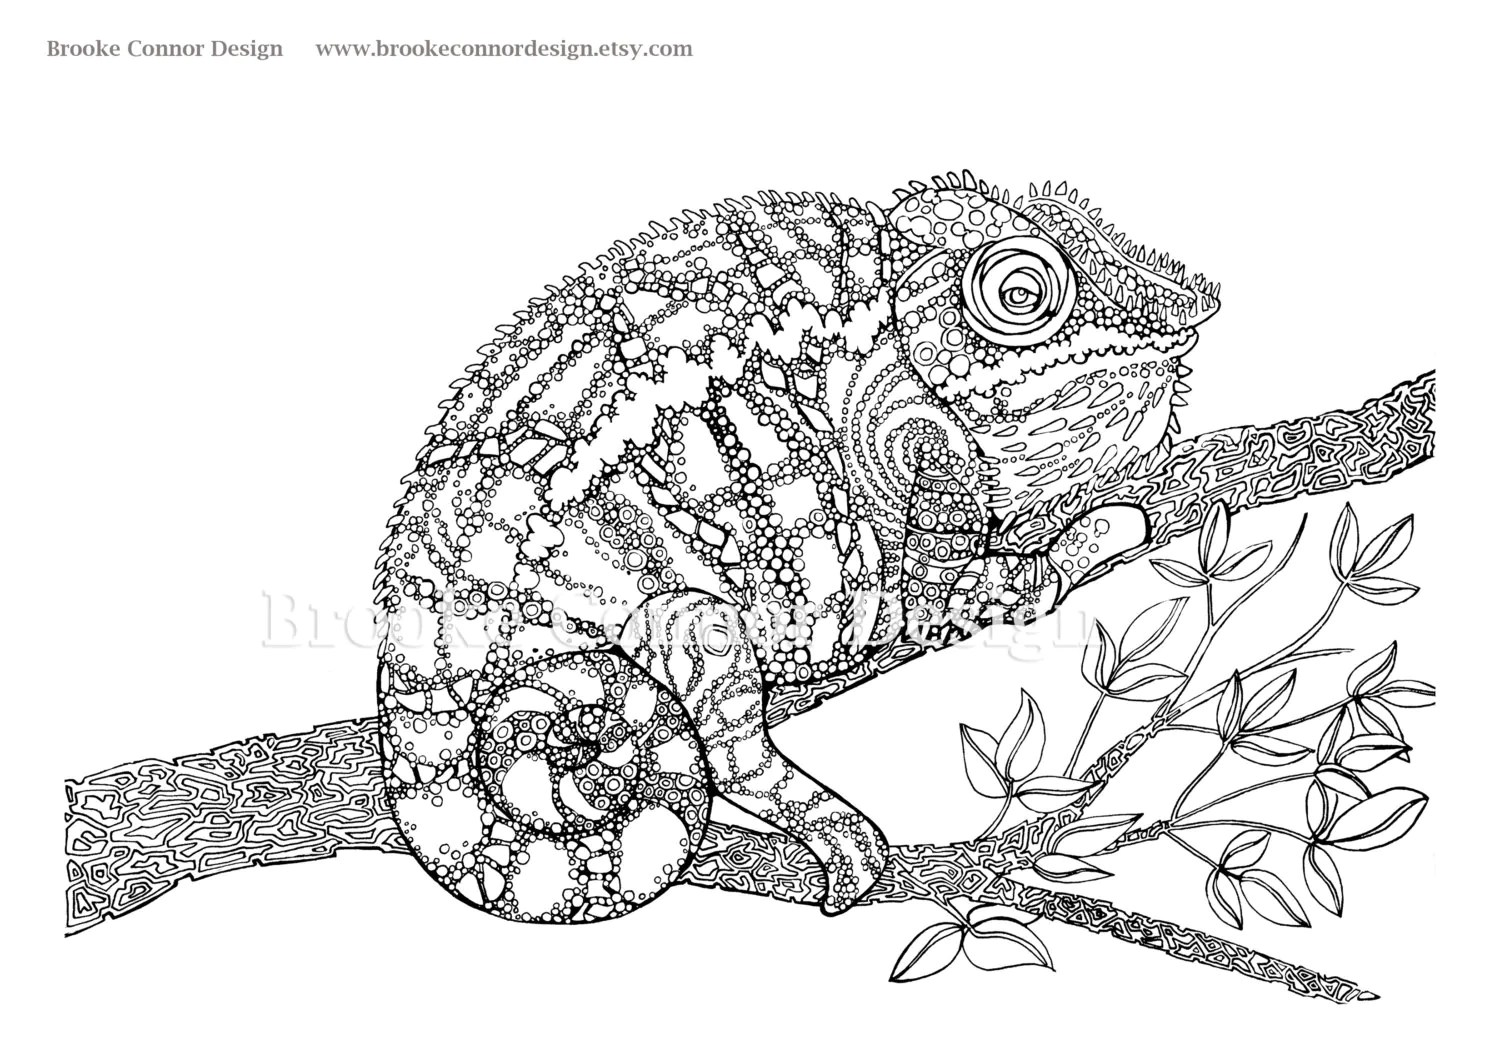 the chameleon coloring page super detailed by brookeconnordesign